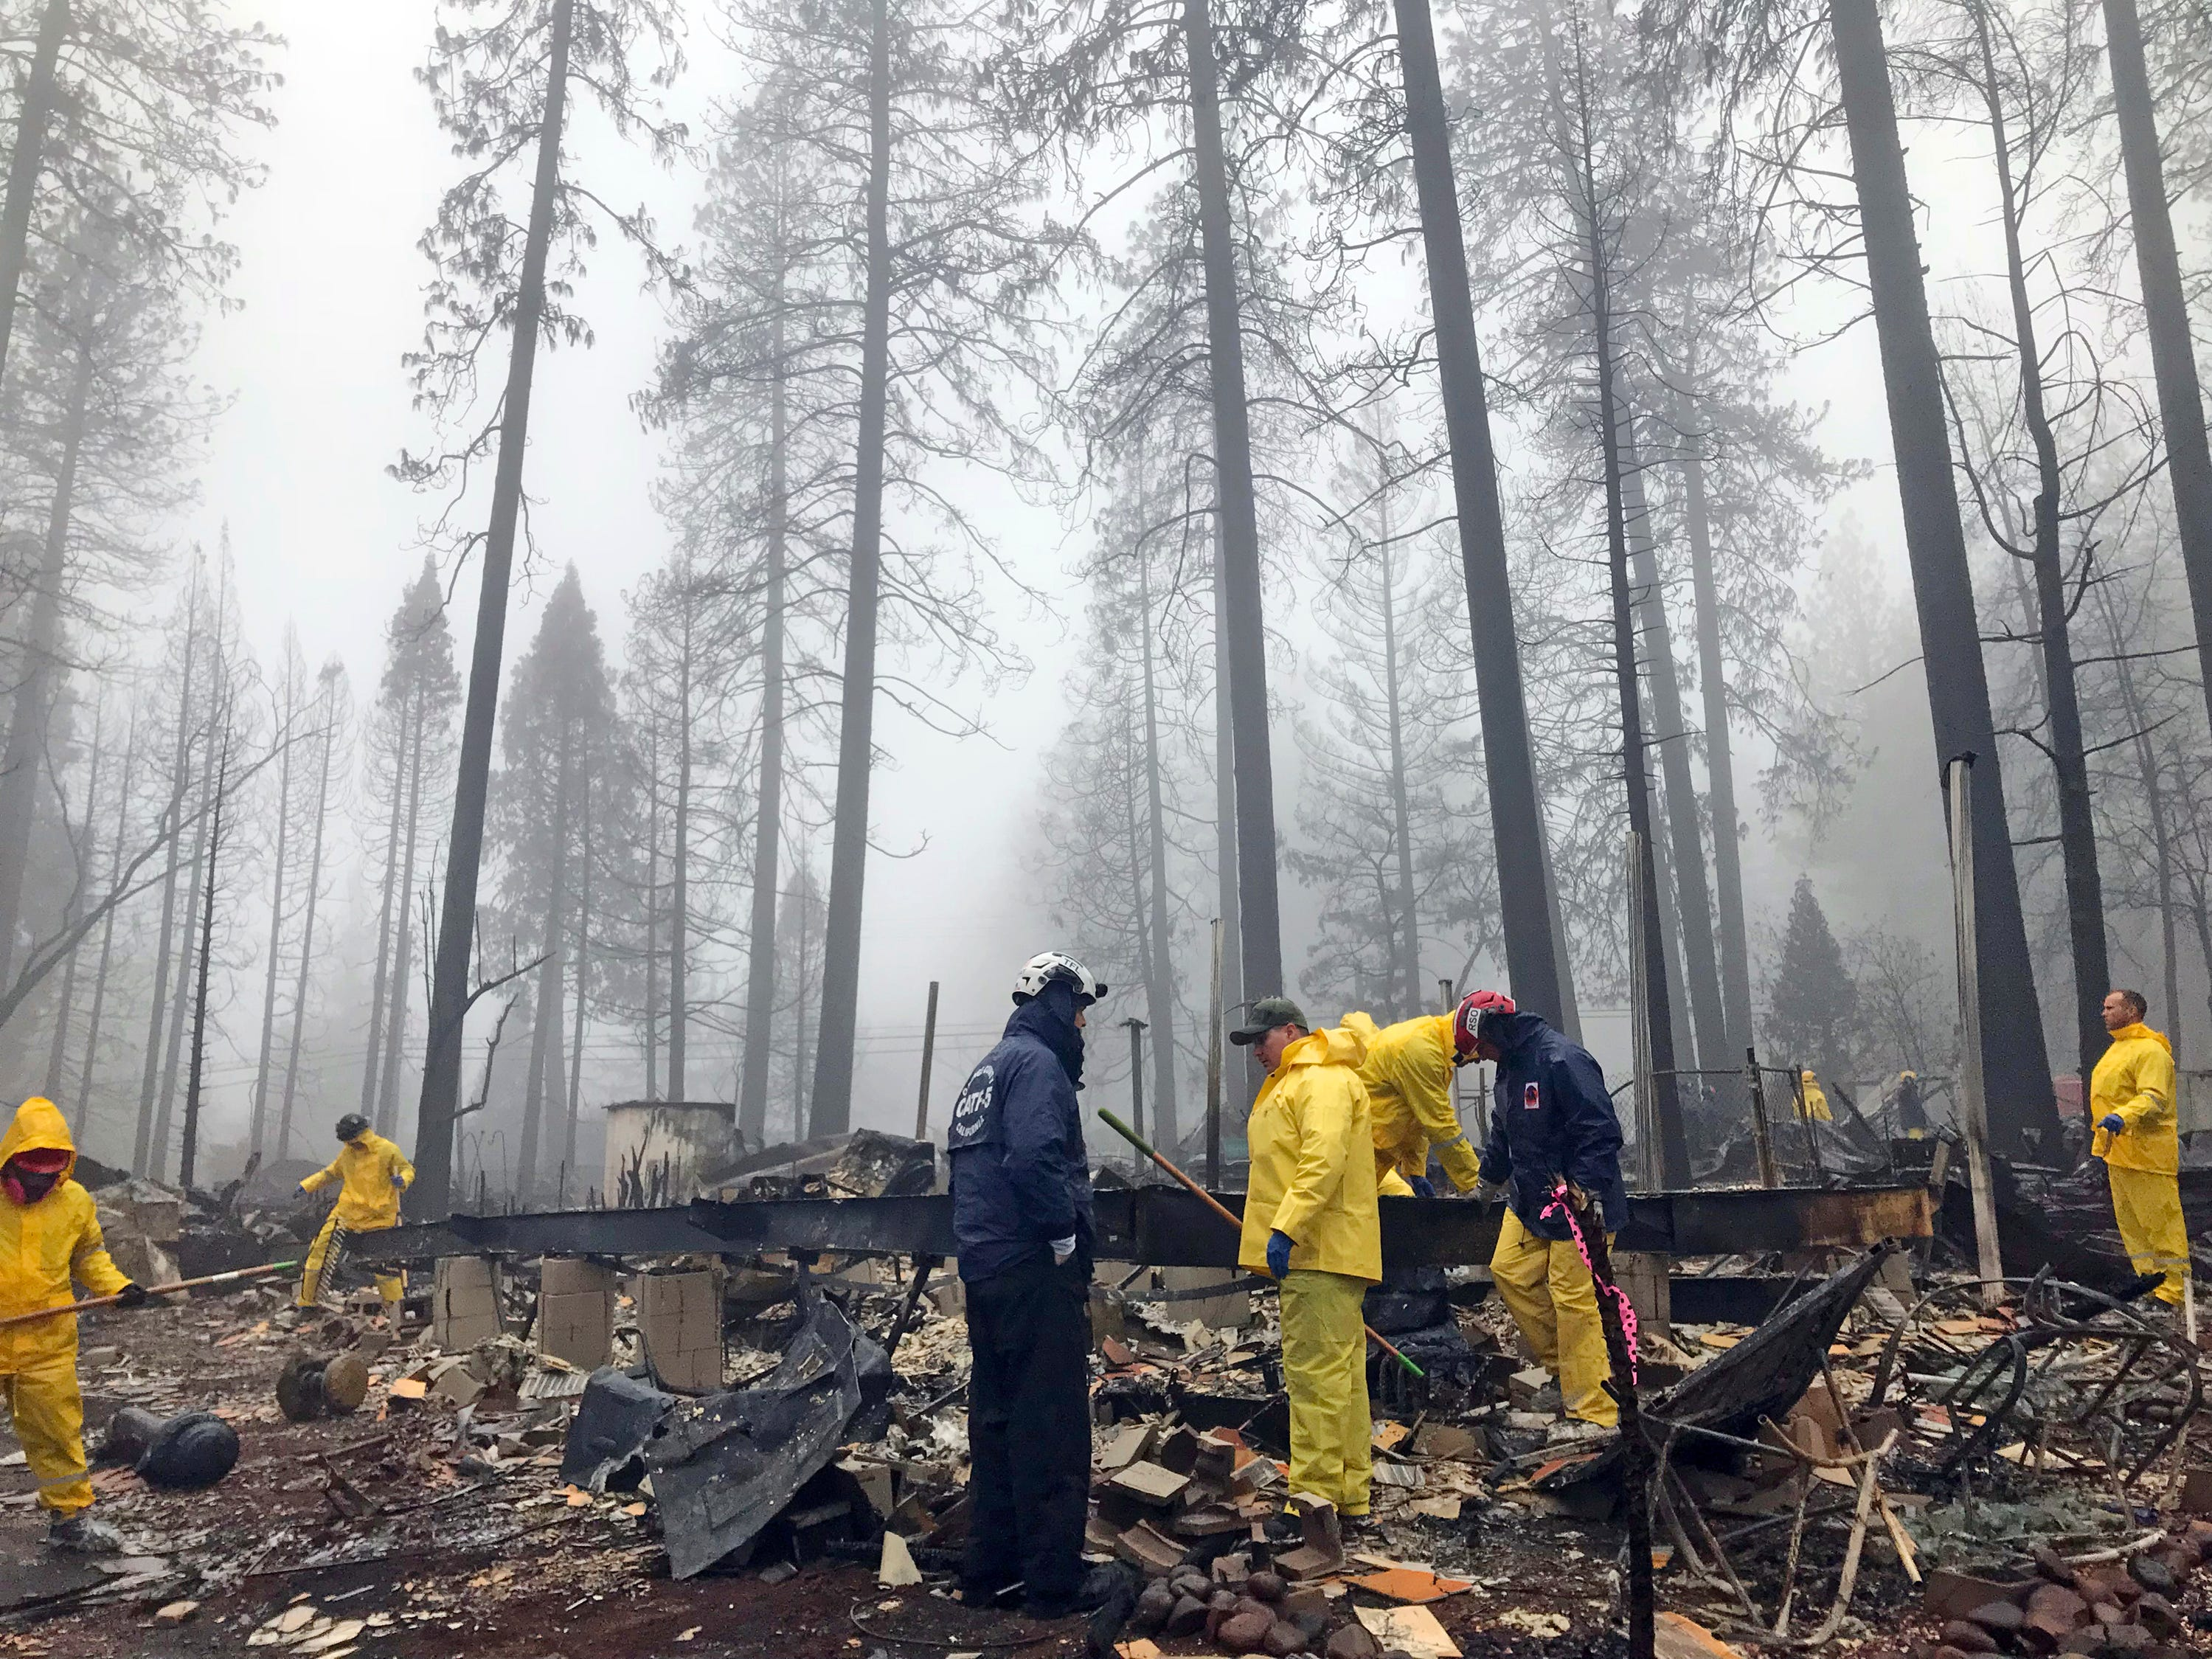 After a brief delay to let a downpour pass, volunteers resume their search for human remains at a mobile home park in Paradise, Calif., Friday, Nov. 23, 2018. A team from Orange County in Southern California is among several teams conducting a second search of a mobile home park after the deadly Camp wildfire torched part of Butte County in Northern California. Task force leader Craig Covey, in blue jacket at center, says his team is doing a second search because there are outstanding reports of missing people whose last known address was at the mobile home park.